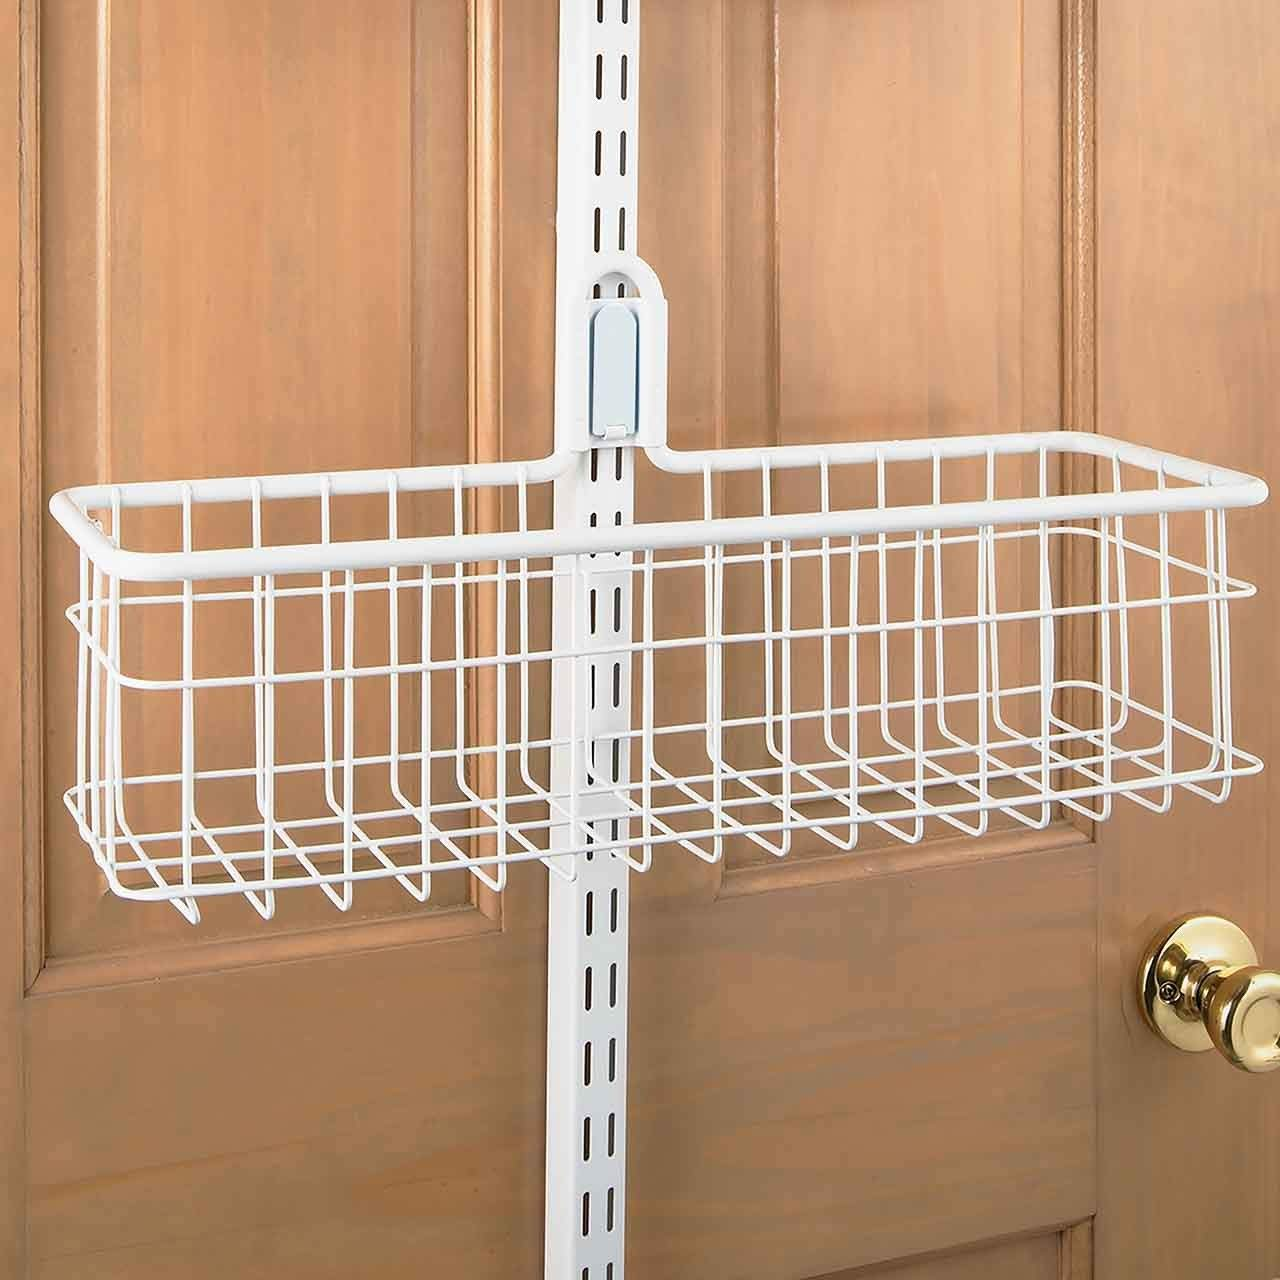 MD Group freedomRail Large Over Door Basket, 8.25'' x 7'' x 6.5 lbs by MD Group (Image #2)